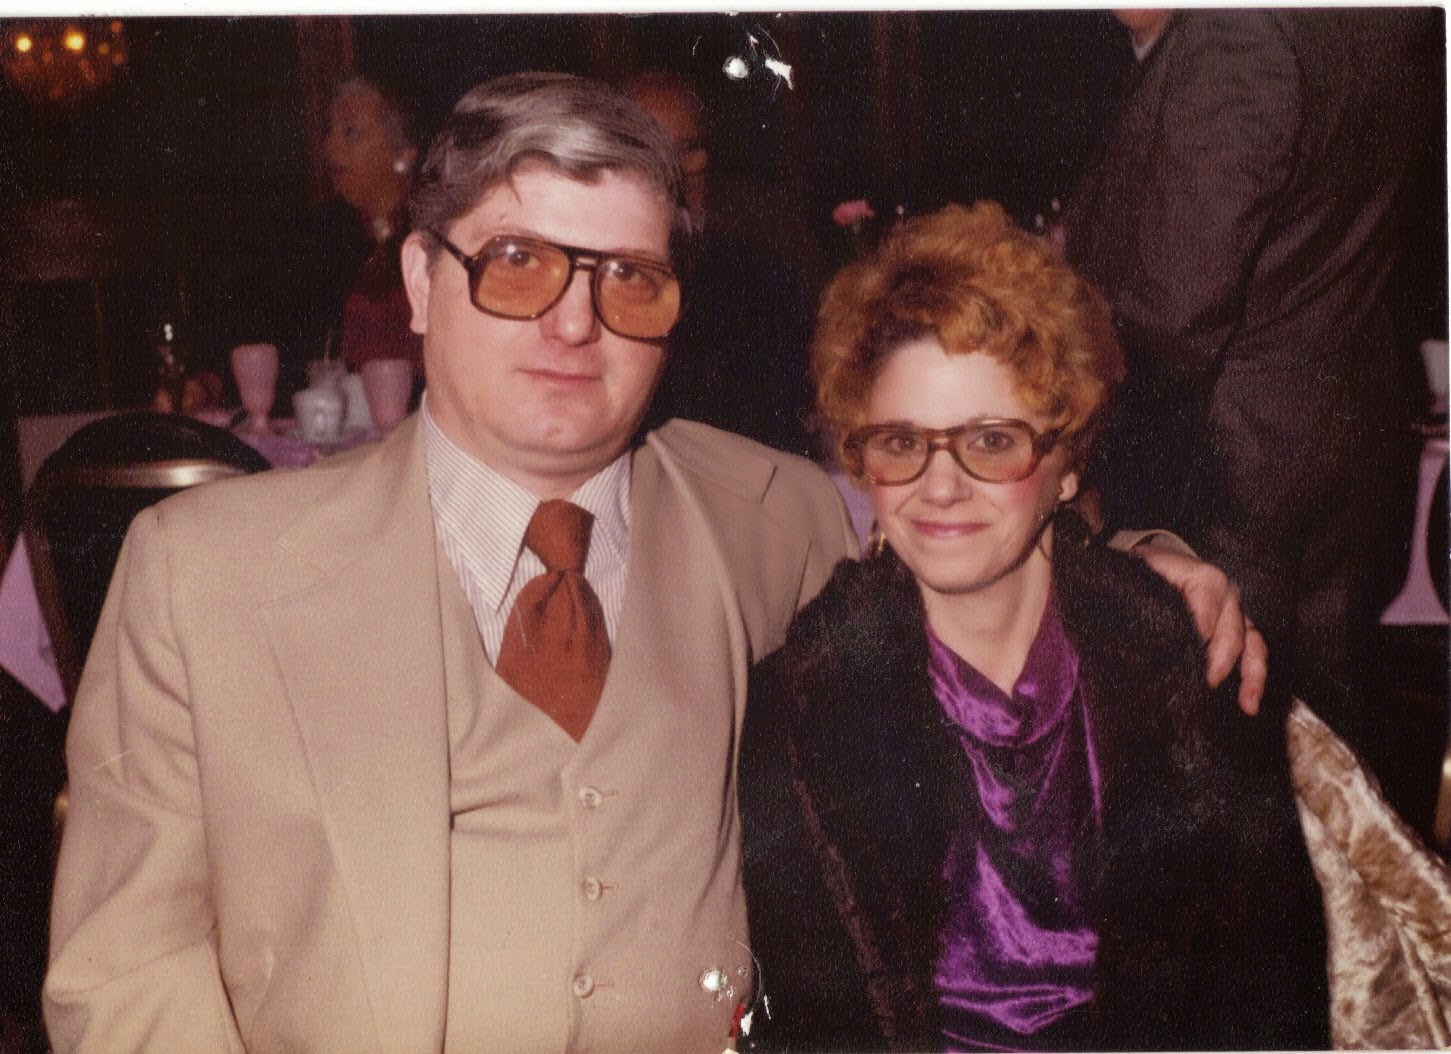 In Loving Memory Of My Dad JLG 5/27/43 To 8/23/98 And My Mom SMG 12/17/42 To 10/31/98